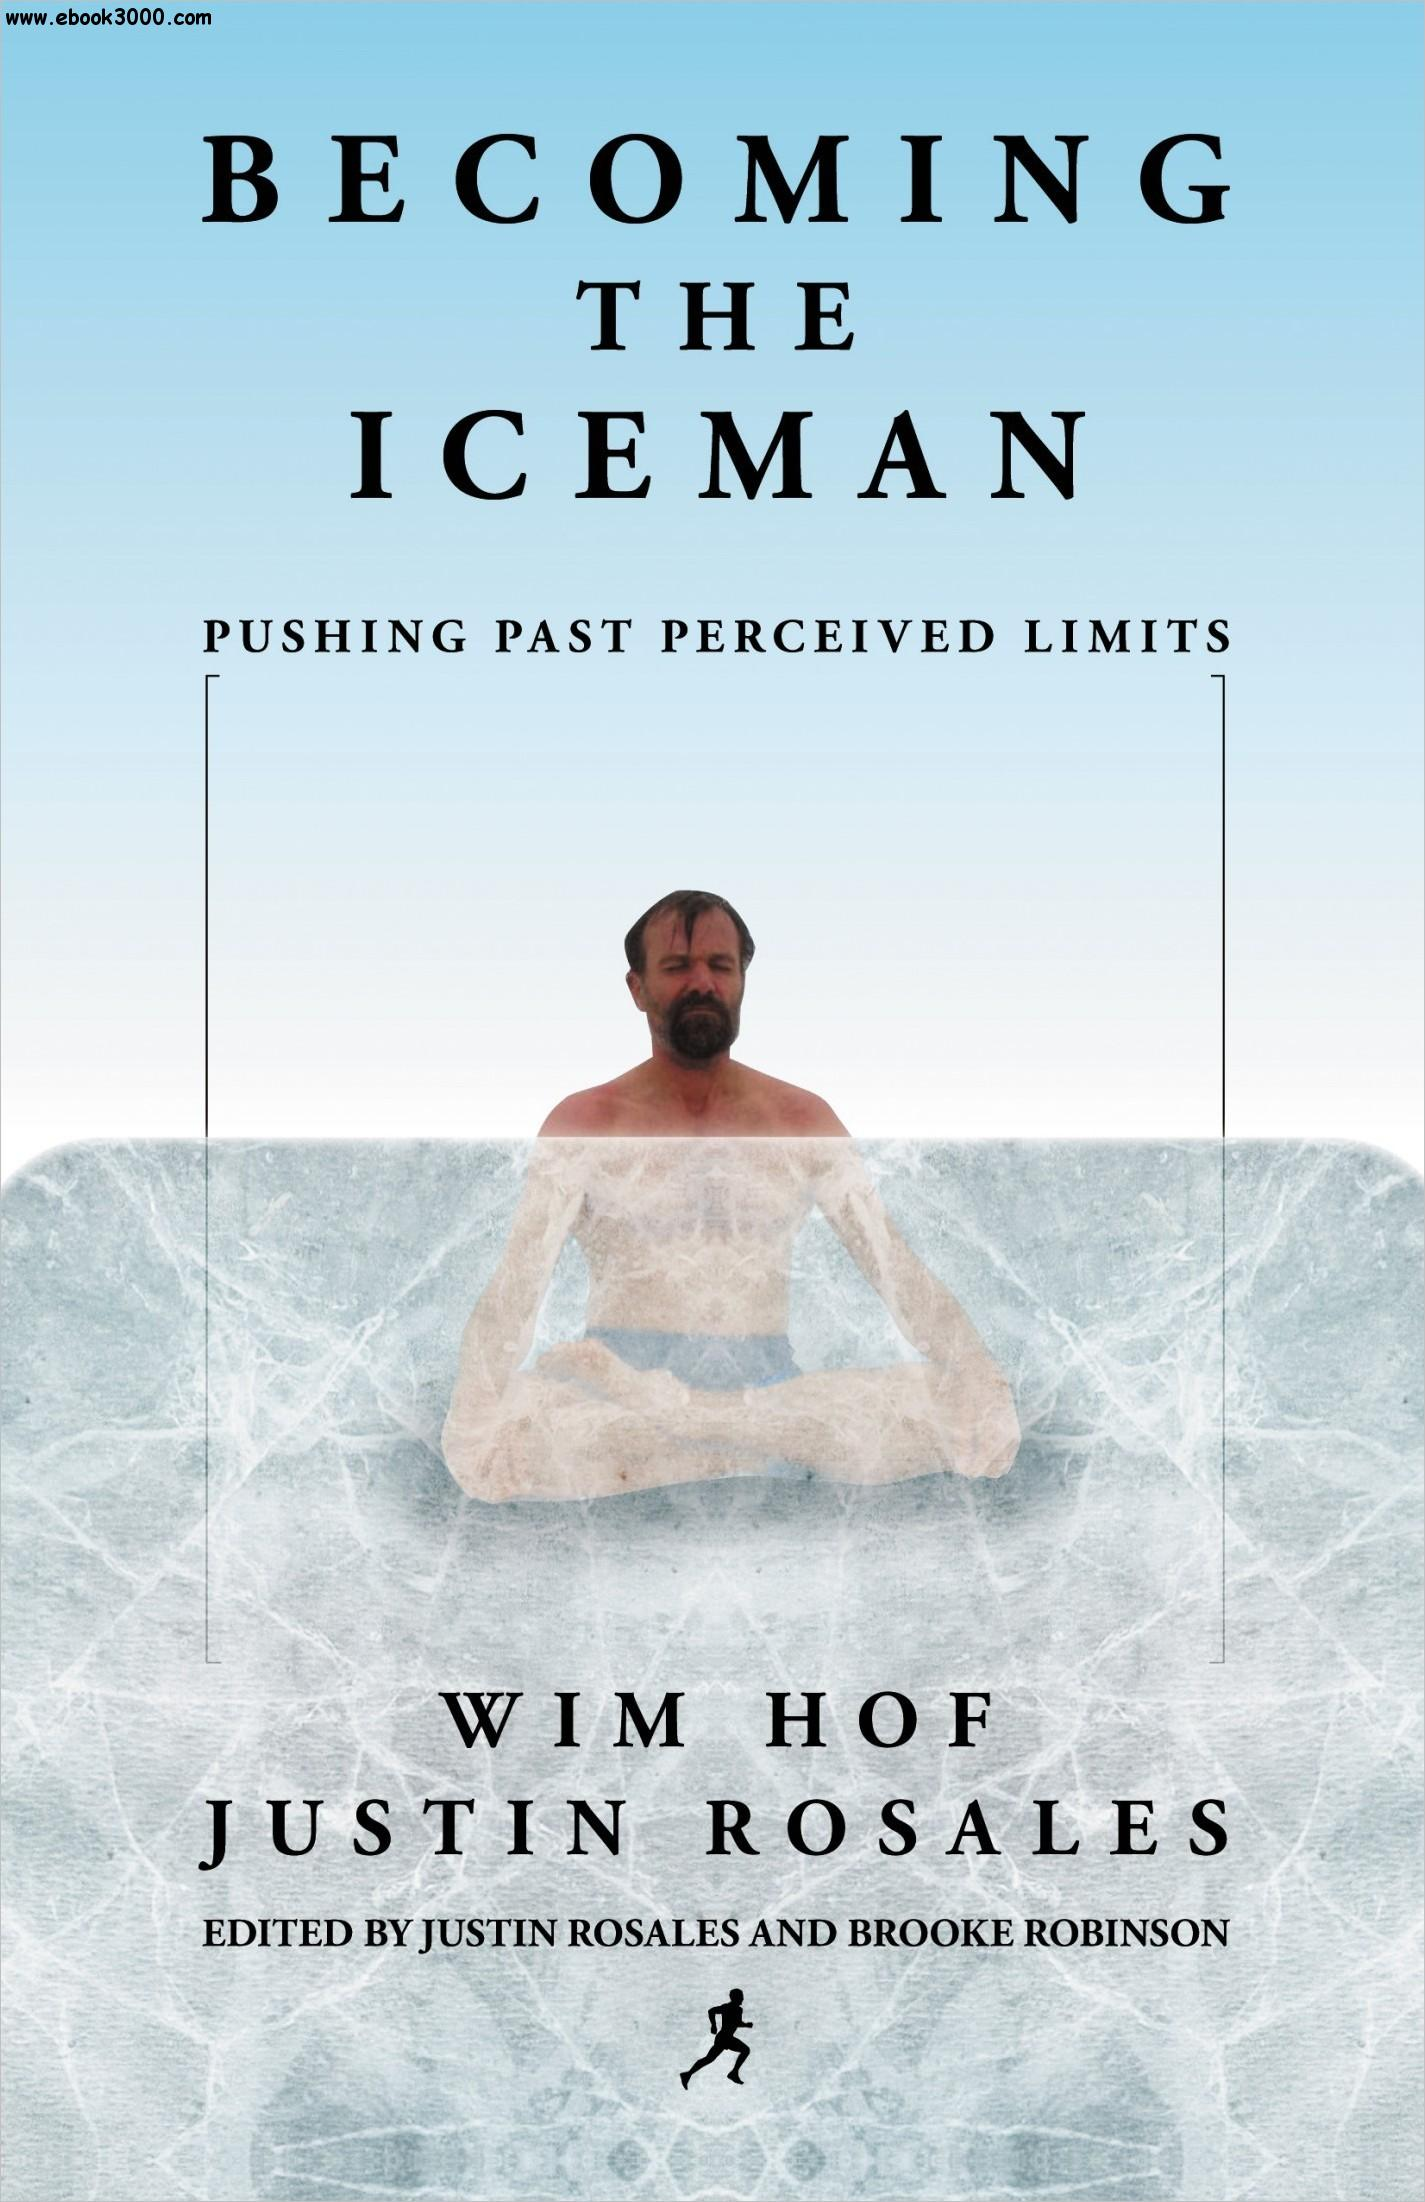 Becoming the Iceman: Pushing Past Perceived Limits